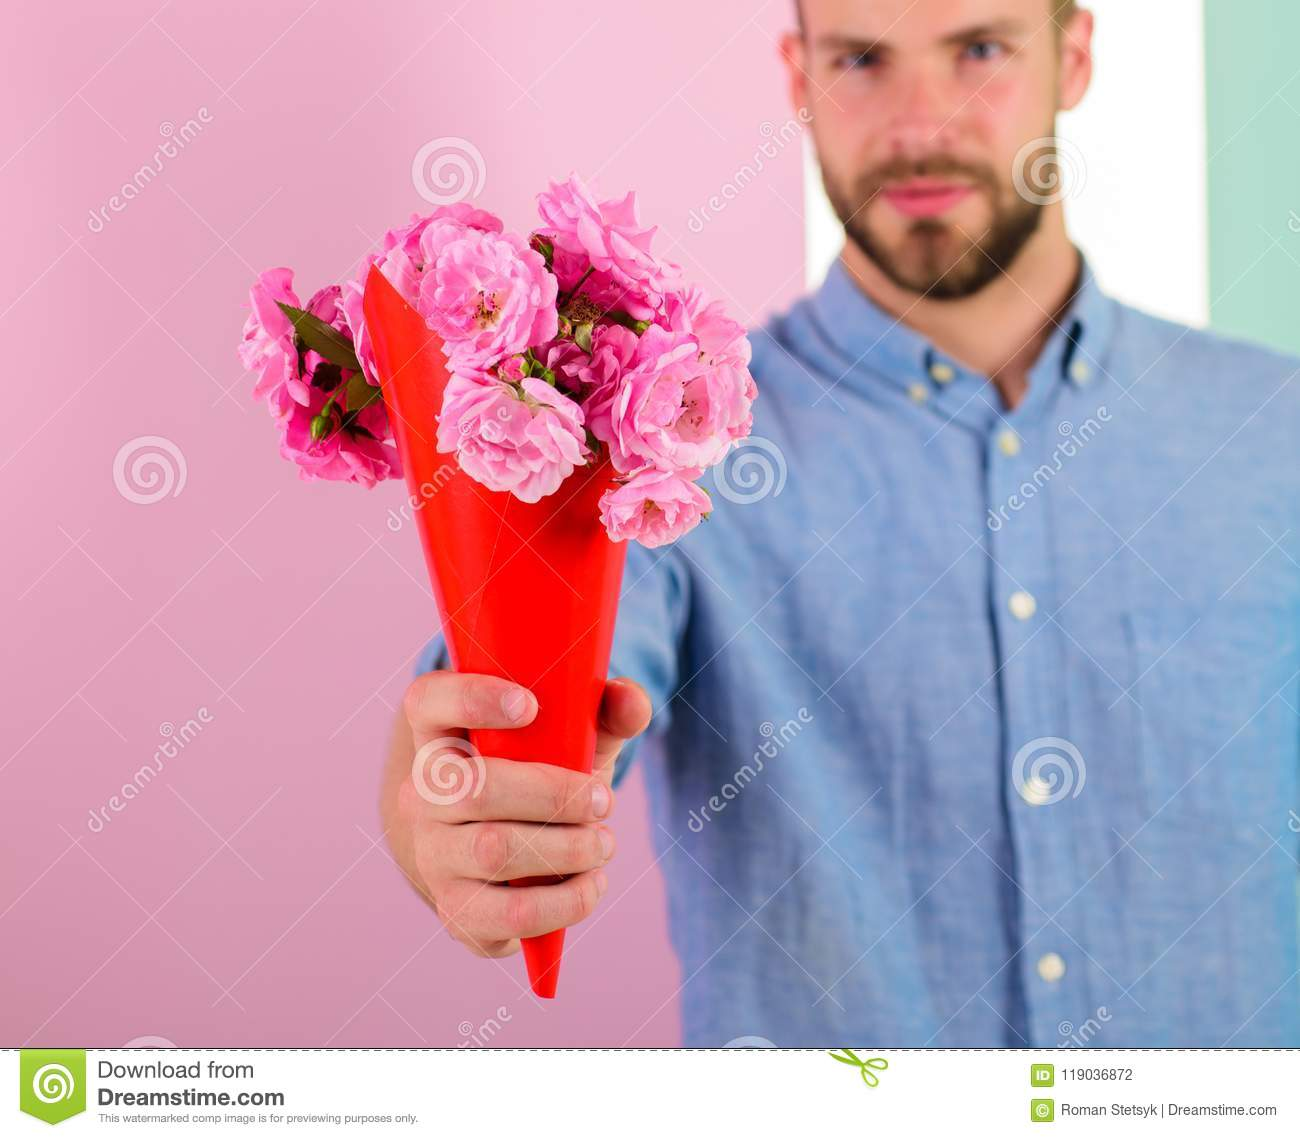 Can you give flowers to a man